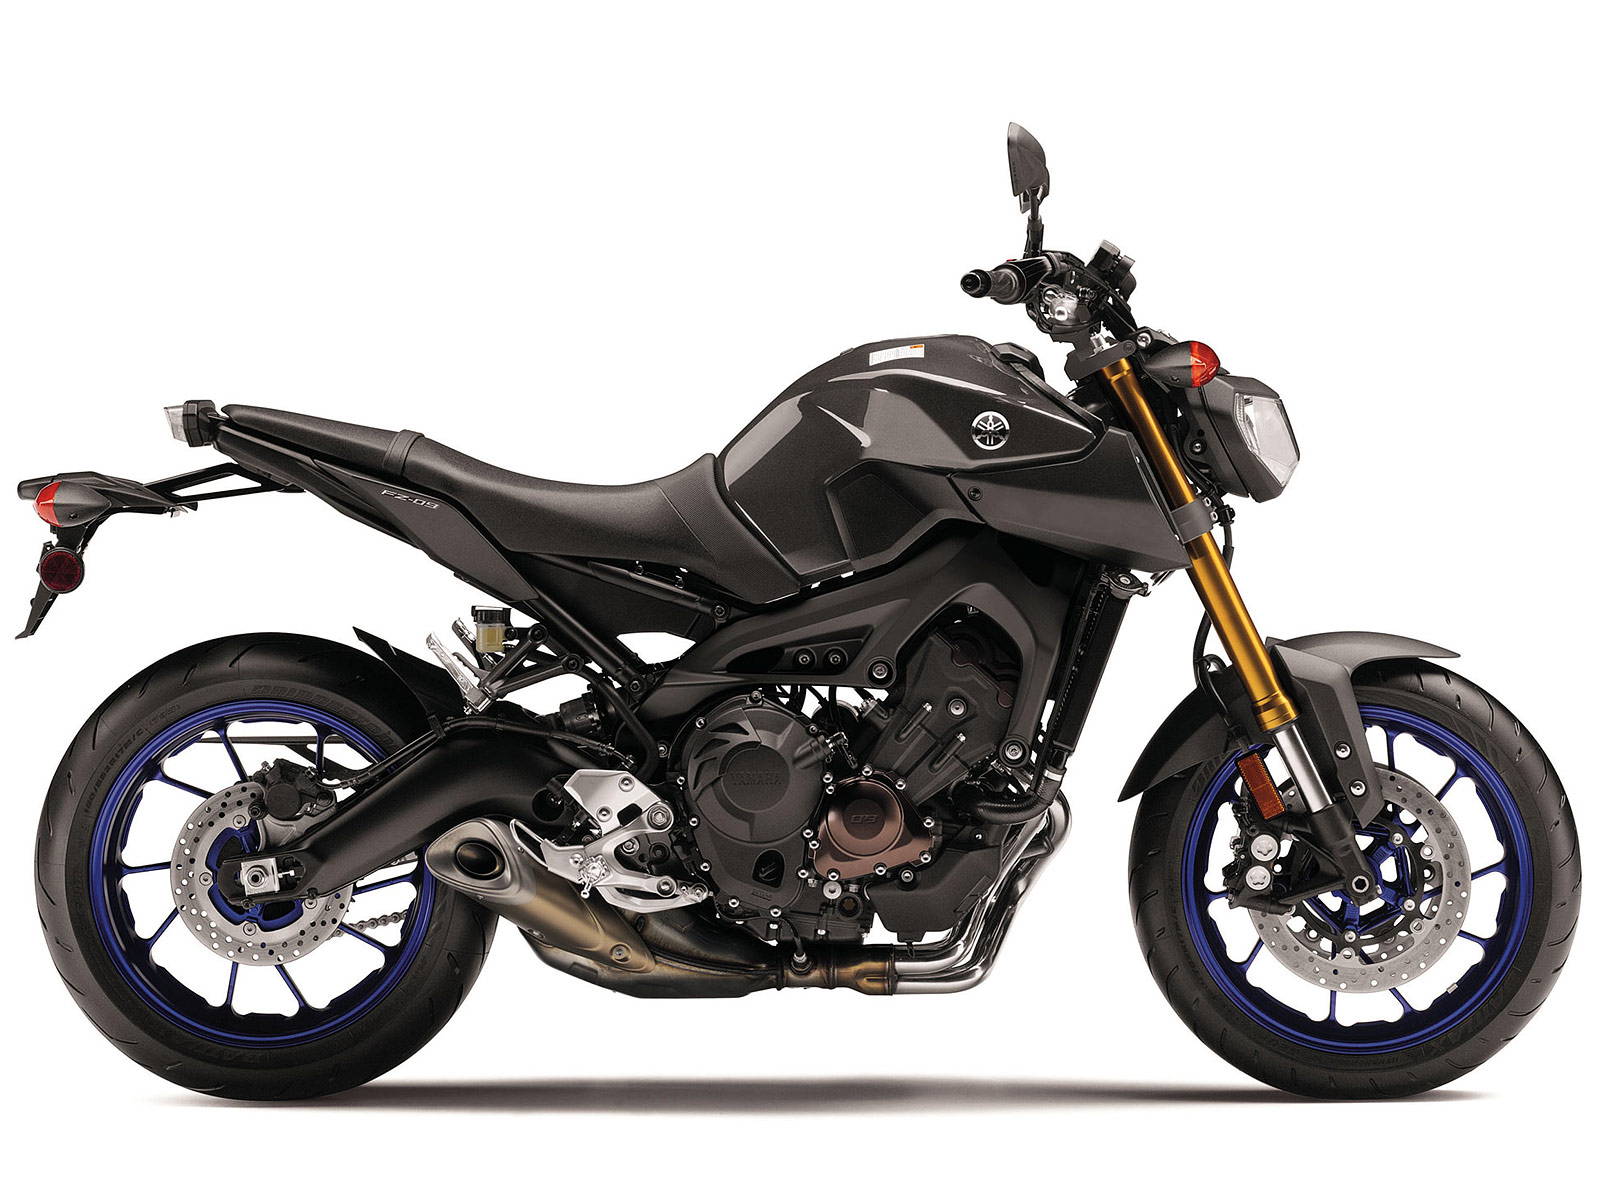 2014 fz 09 yamaha insurance information pictures specs for Yamaha fz 09 horsepower